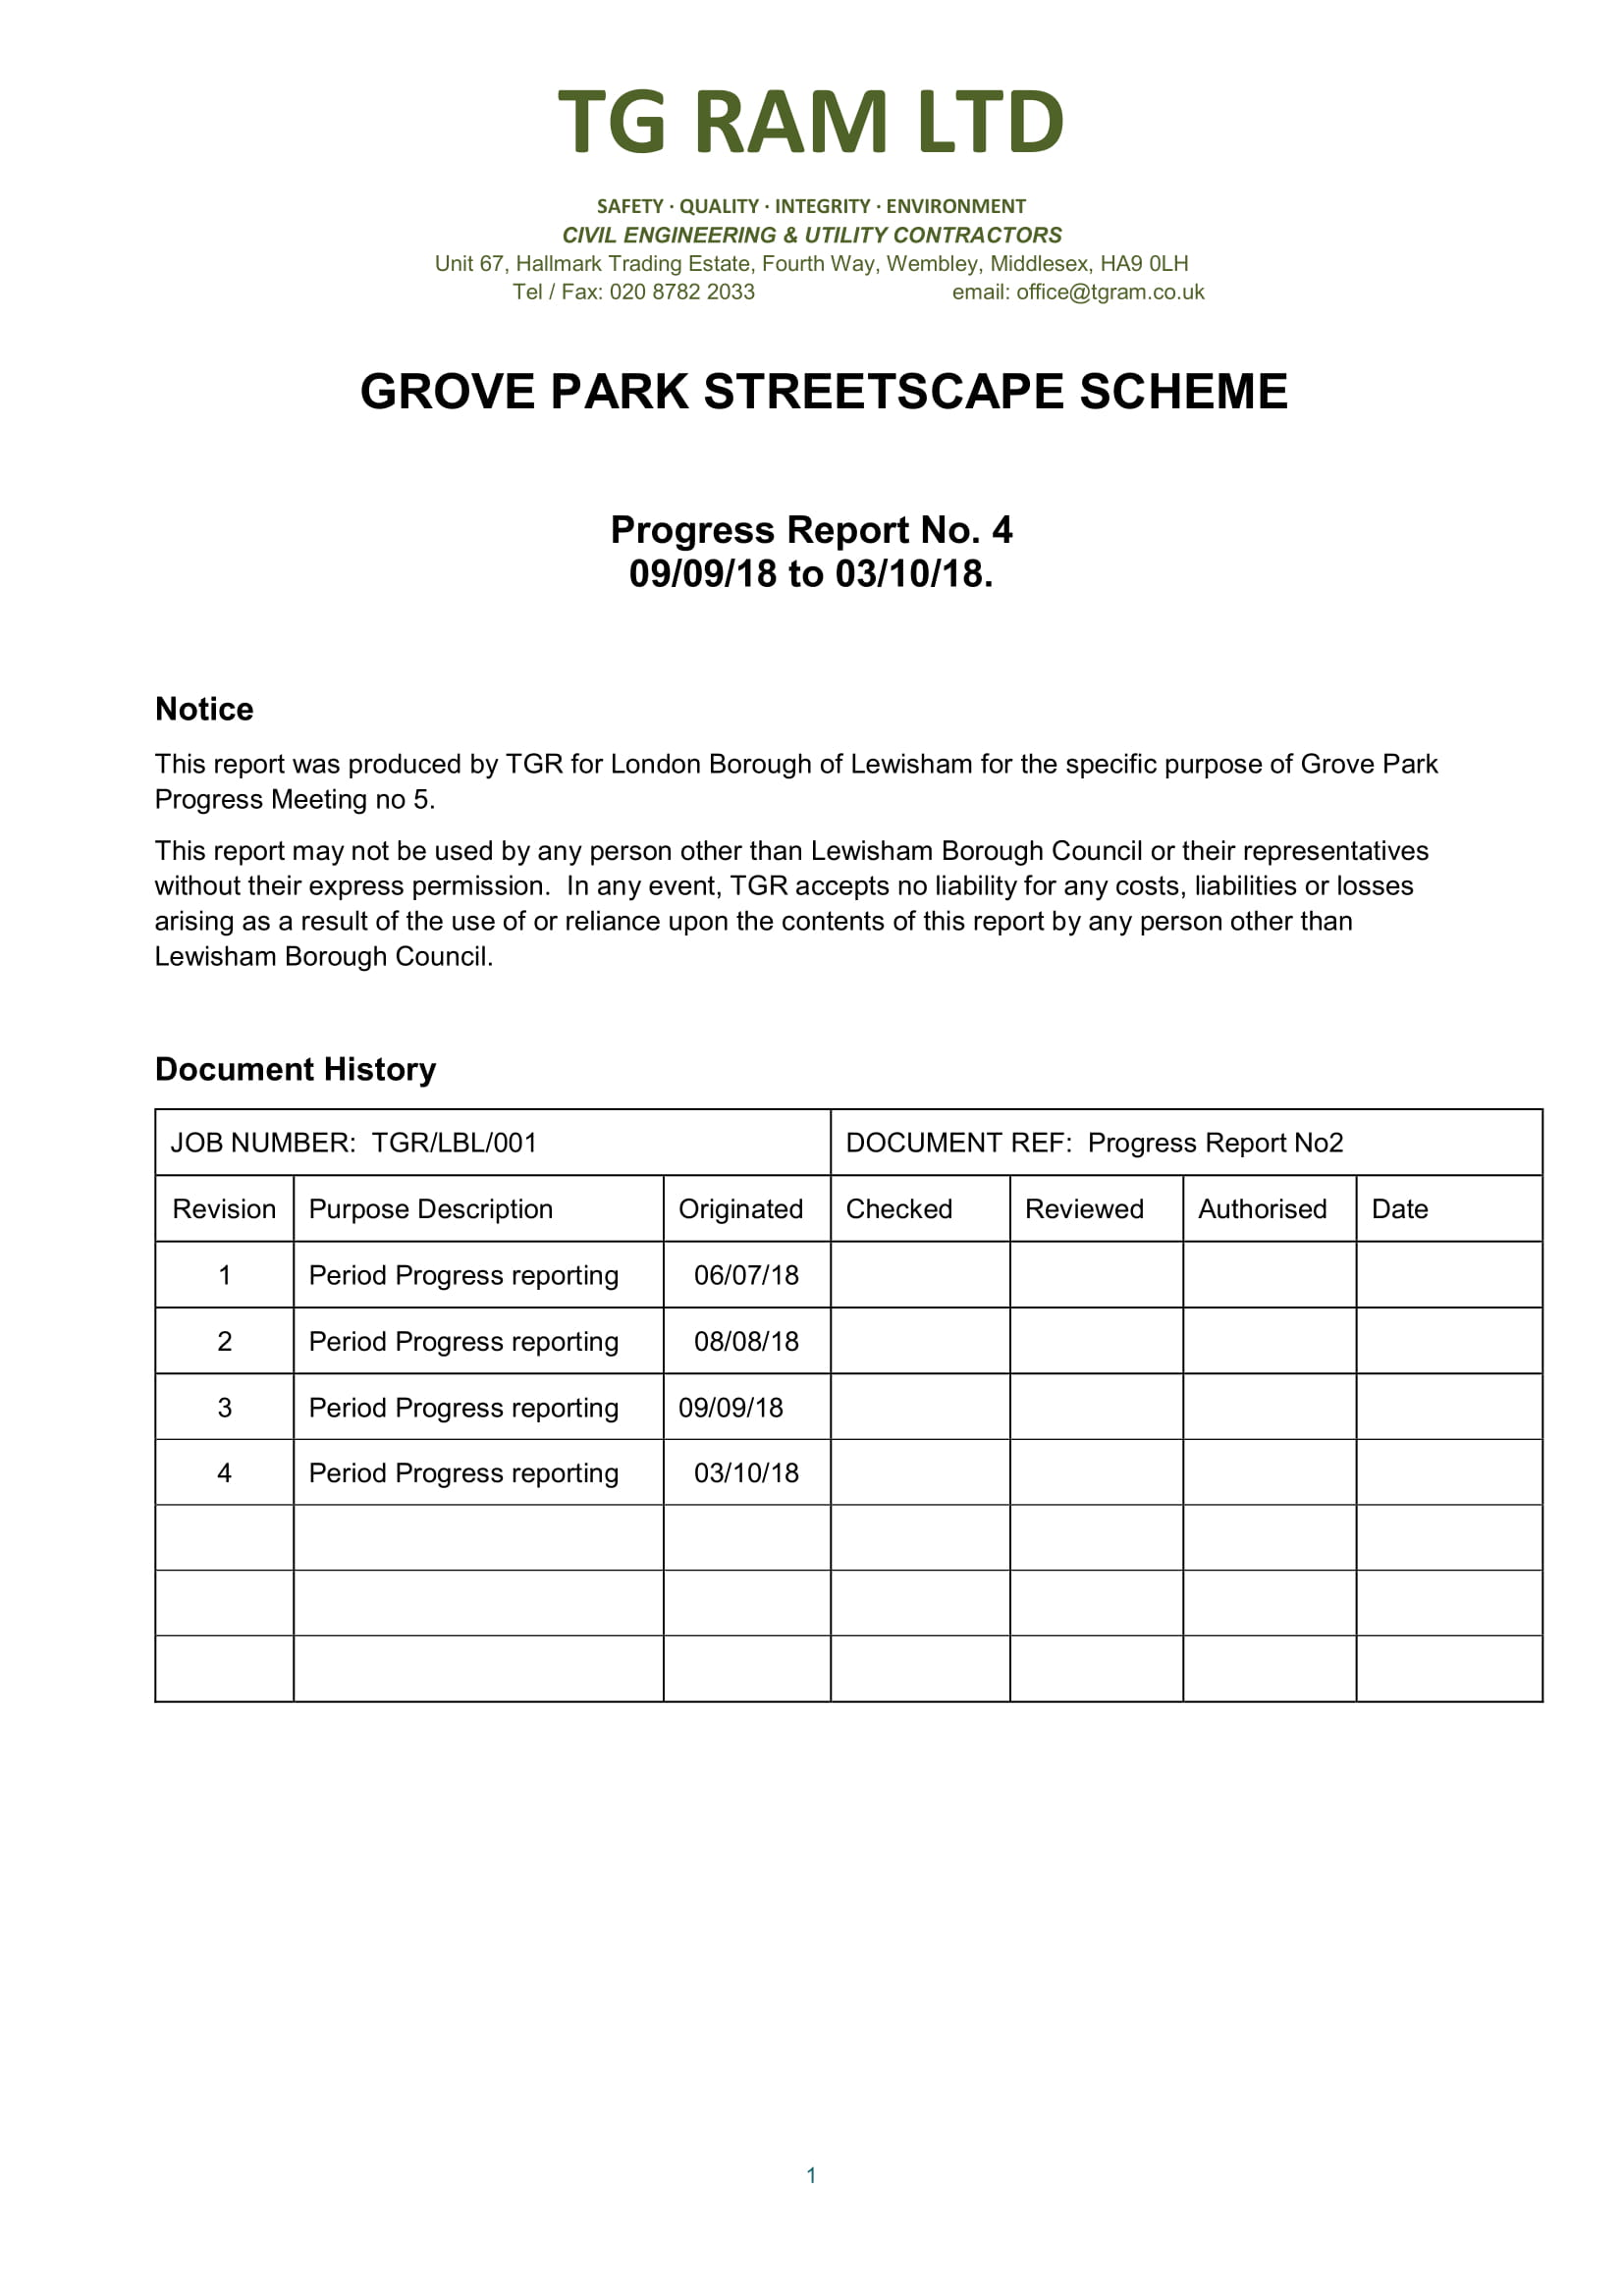 grove-park-short-progress-report-4_shortened-version-1-copy